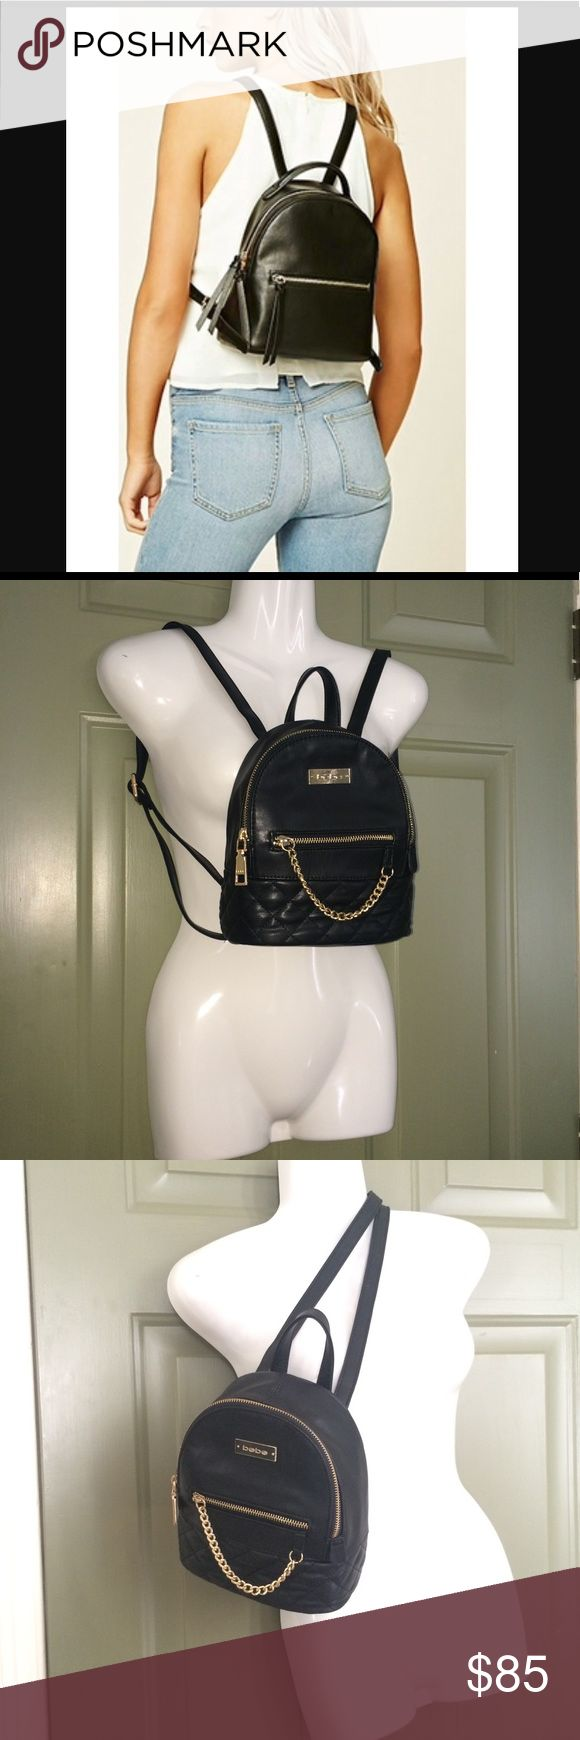 "💗CUTE BEBE MINI PURSE BACKPACK Black SHOULDER BAG 💗SUPER CUTE BEBE MINI PURSE BACKPACK 💗LOTS OF COMPLIMENTS 💗VERY VERSATILE 💗NEW WITH TAGS. NICE GOLD TONE. OUTSIDE&INSIDE POCKET QUILTED BOTTOM Black VEGAN FAUX LEATHER  ❤️Retails for about $85w/Tax  Aprox Height 8.5"" Width 7.5"" Depth 4"" *1st &last pics Not mine,for Styling purposes Only,similar bag. * TAG:shoulder bag,handbag,back pack,festival concert,Kate spade,Brandy Melville,Michael Kors,Julian,bow,unif,Rebecca minkoff,betsey…"